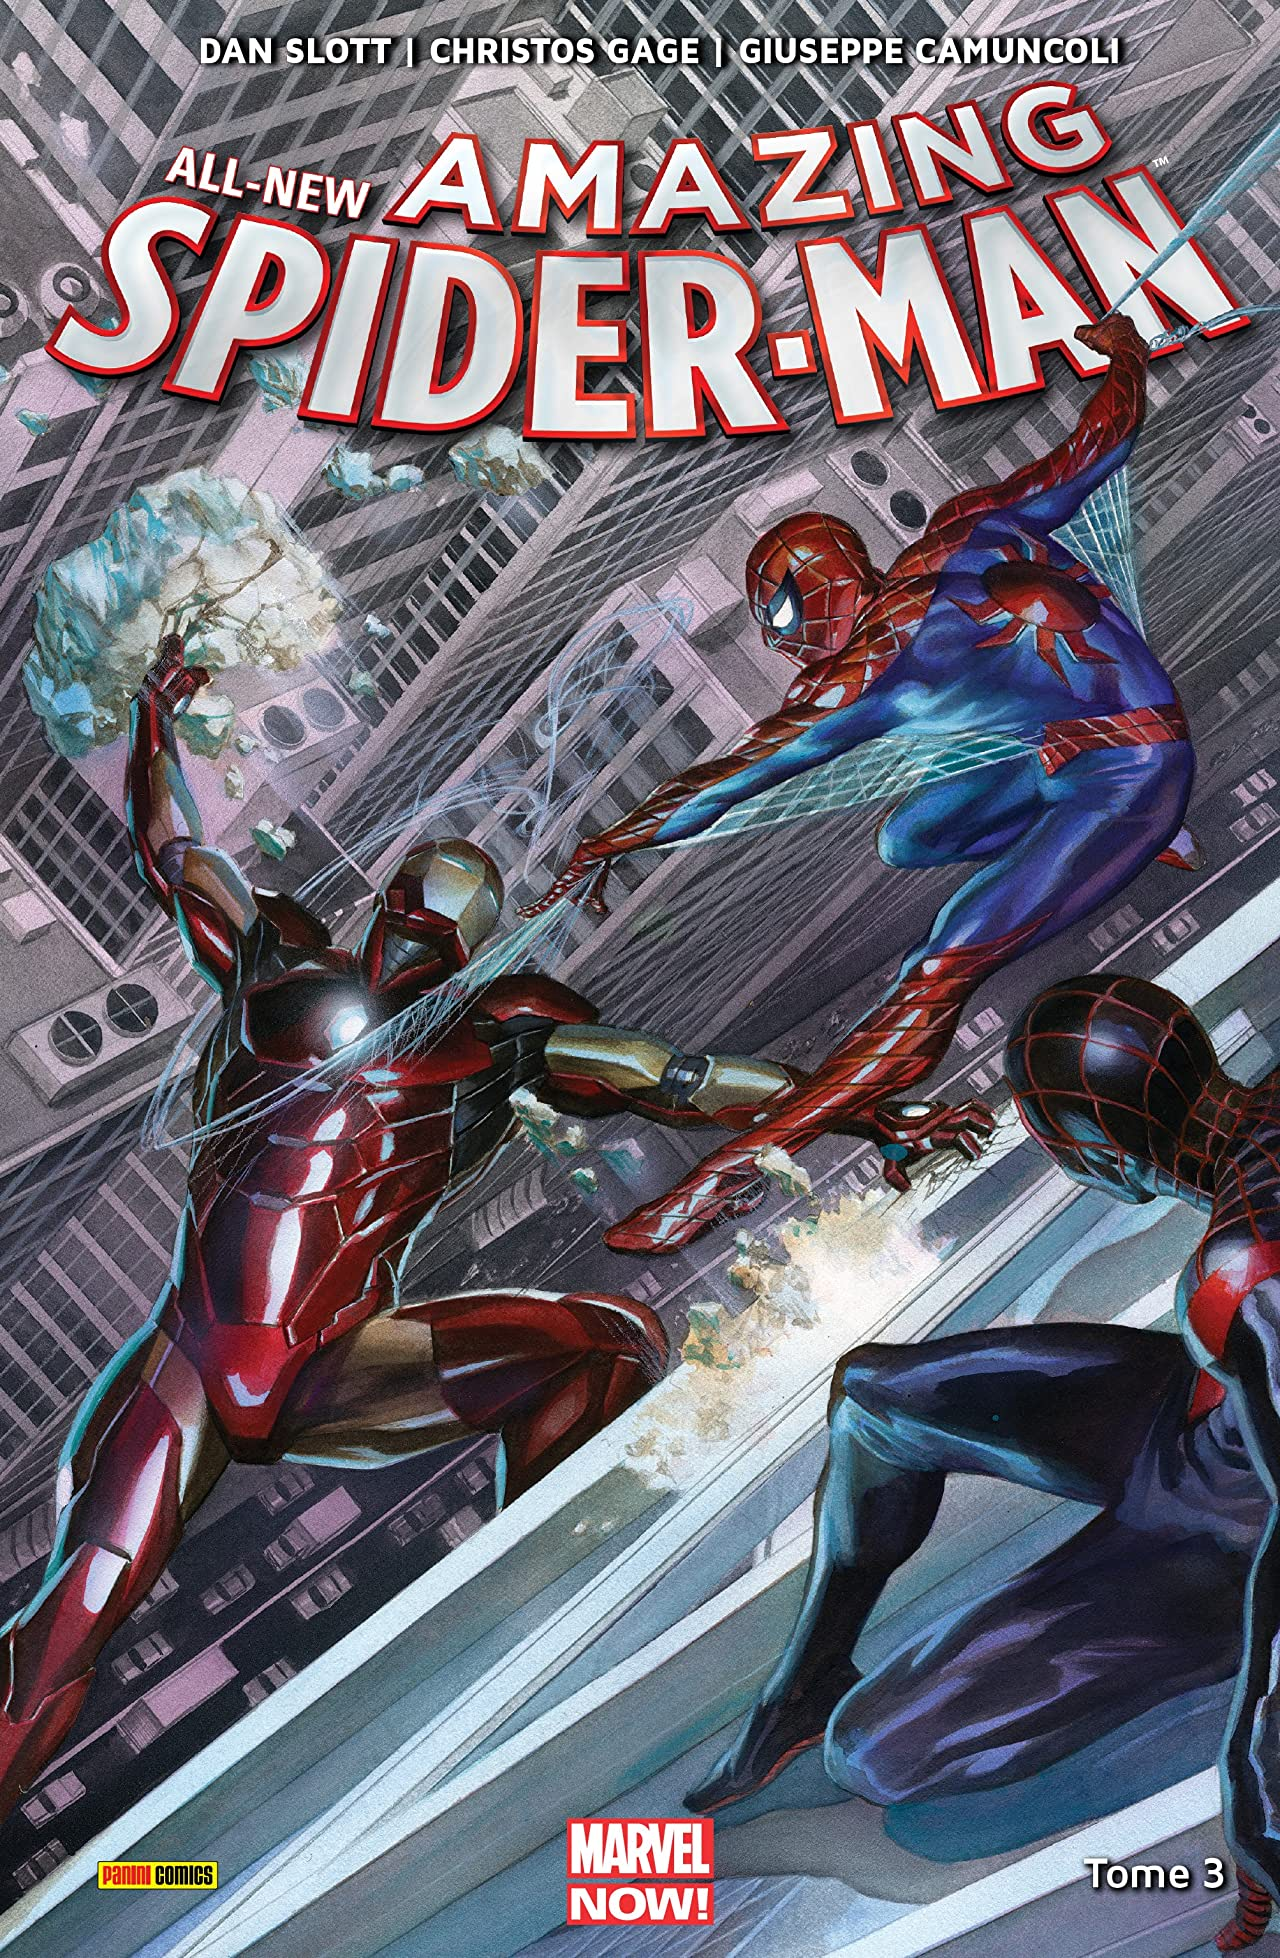 All-New Amazing Spider-Man Vol. 3: Jeu de pouvoir